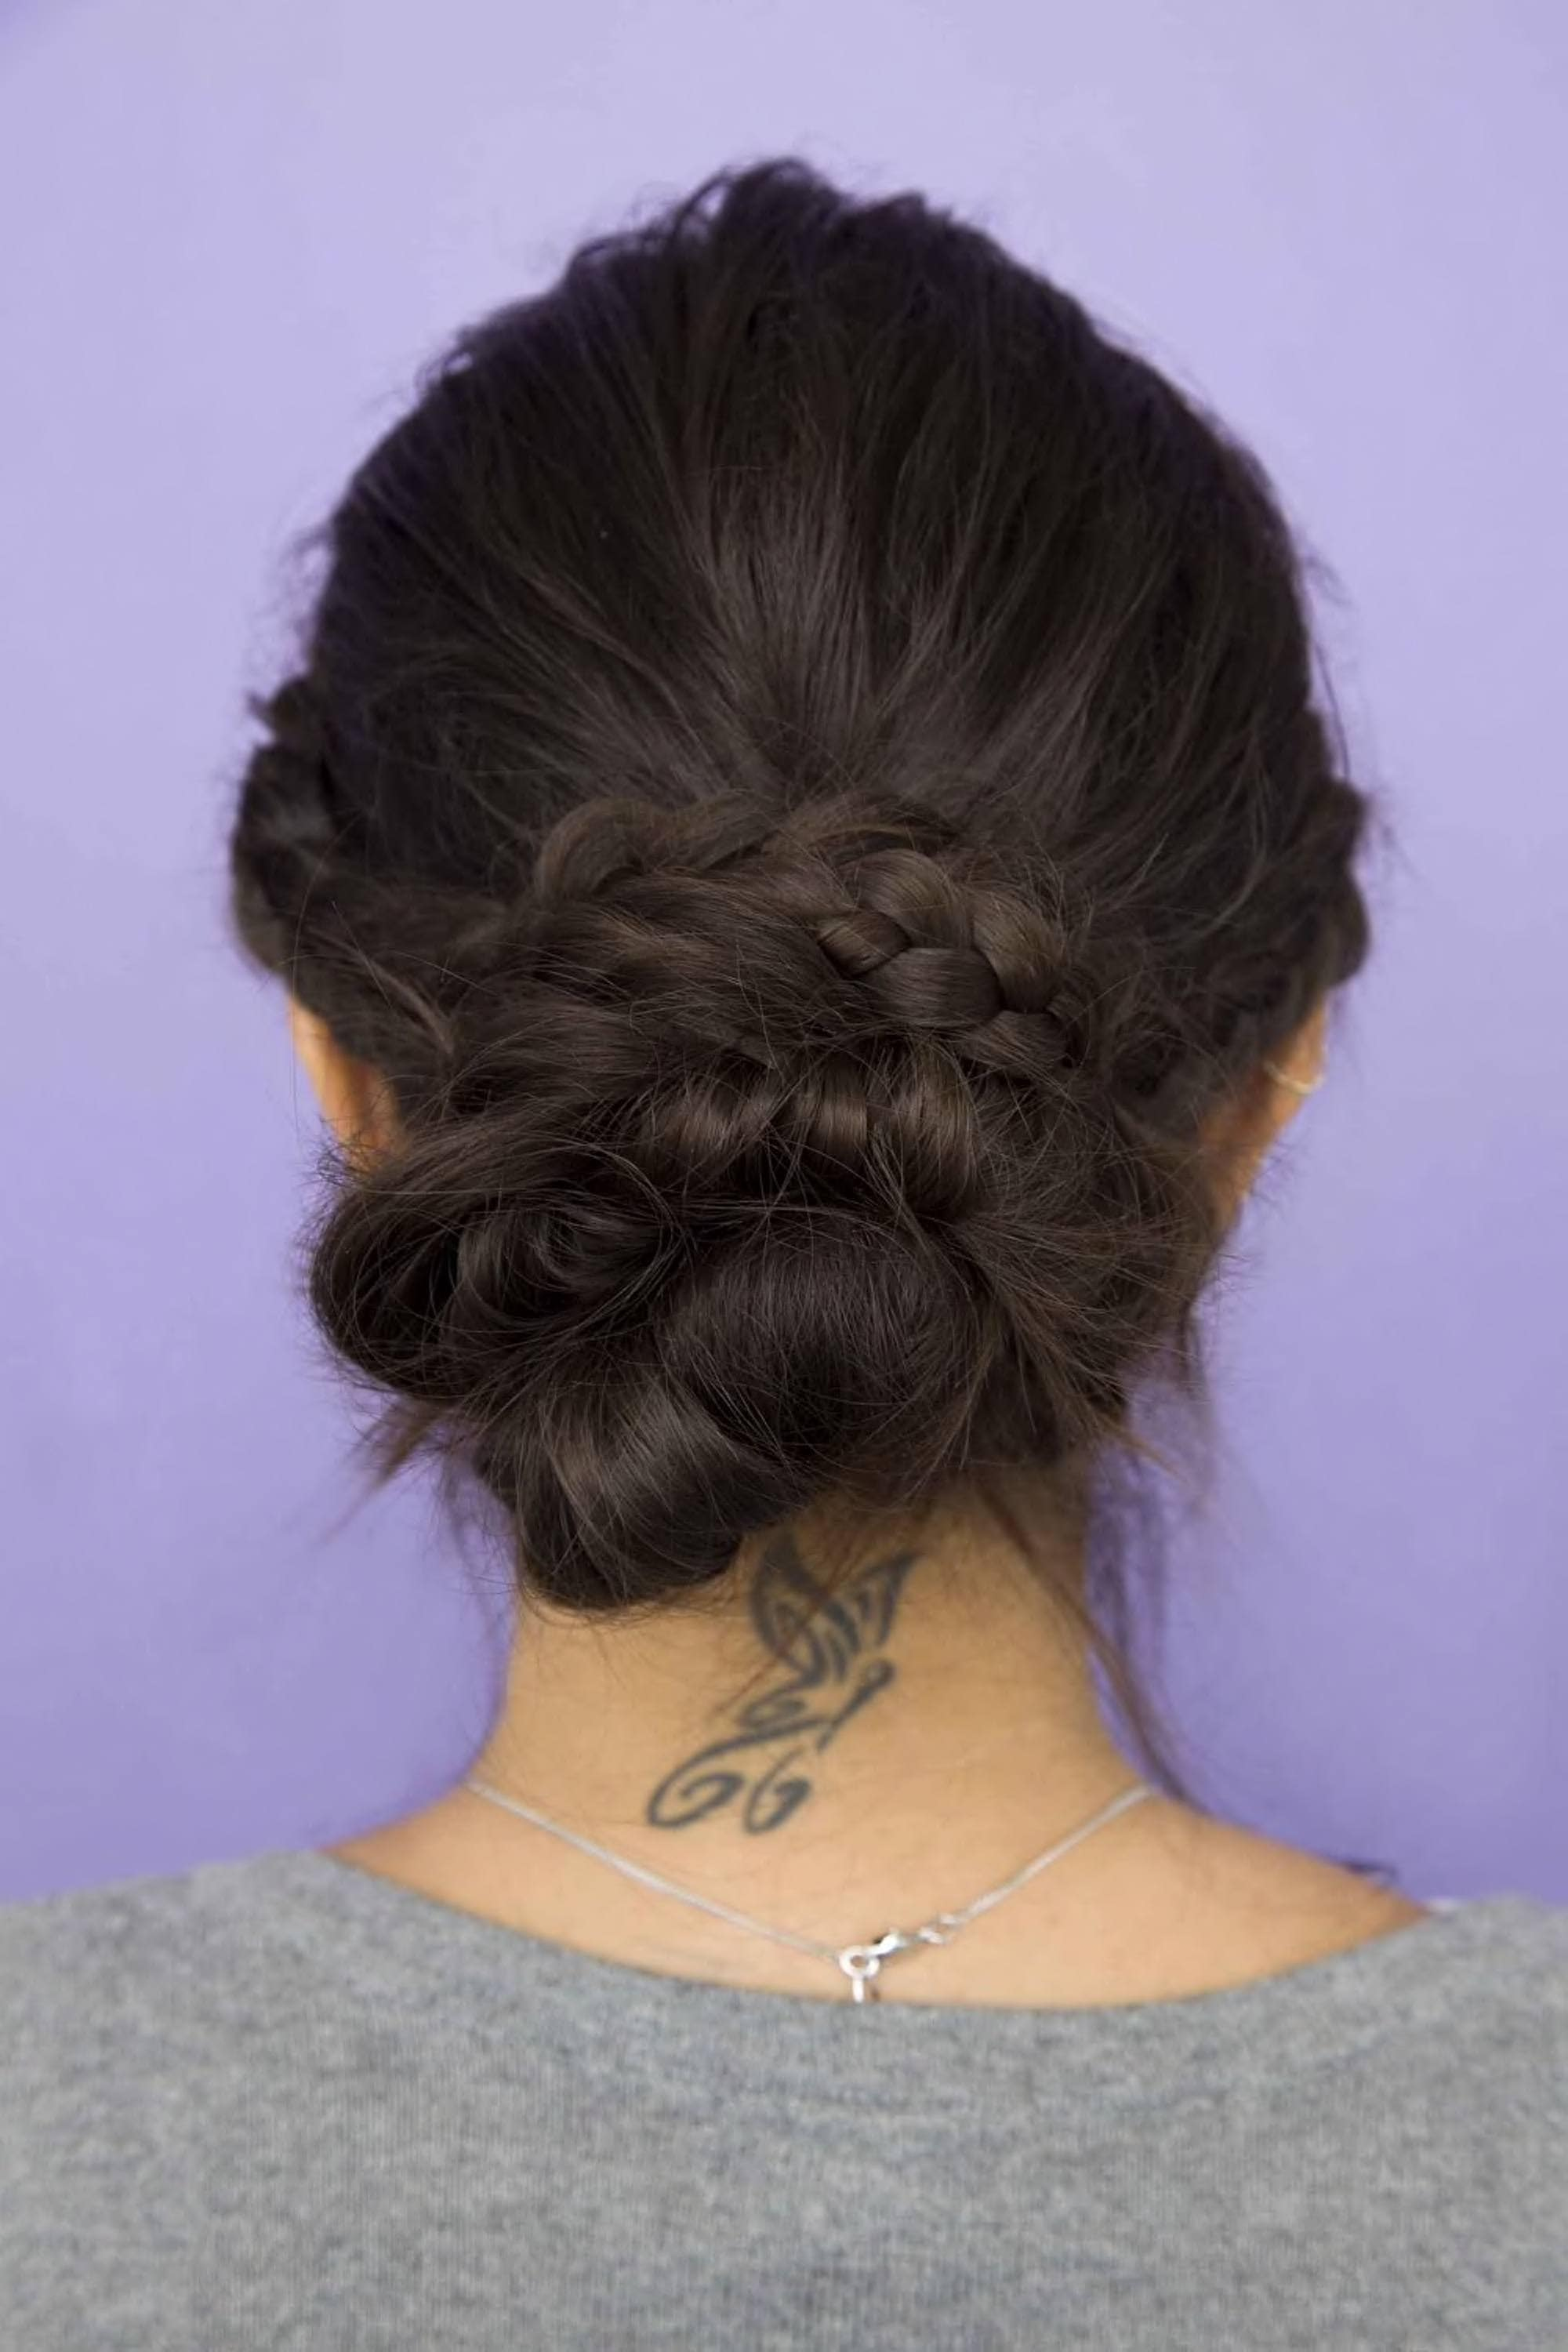 bun hairstyles: hair trends and stylish updos to try